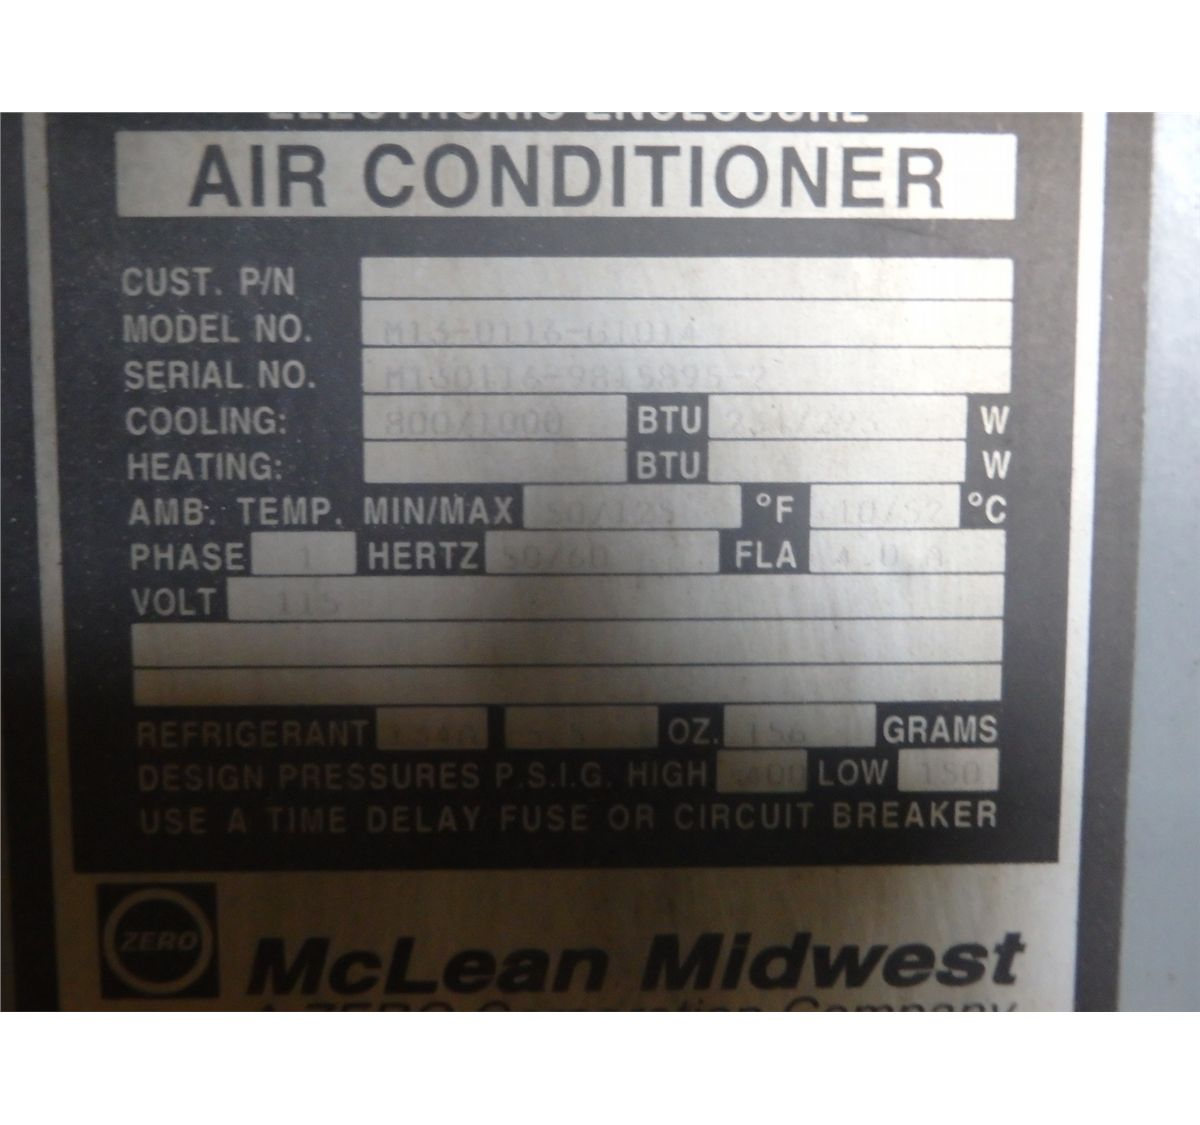 hight resolution of  image 7 mclean midwest m13 0116 g1014 electrical box chiller air conditioner